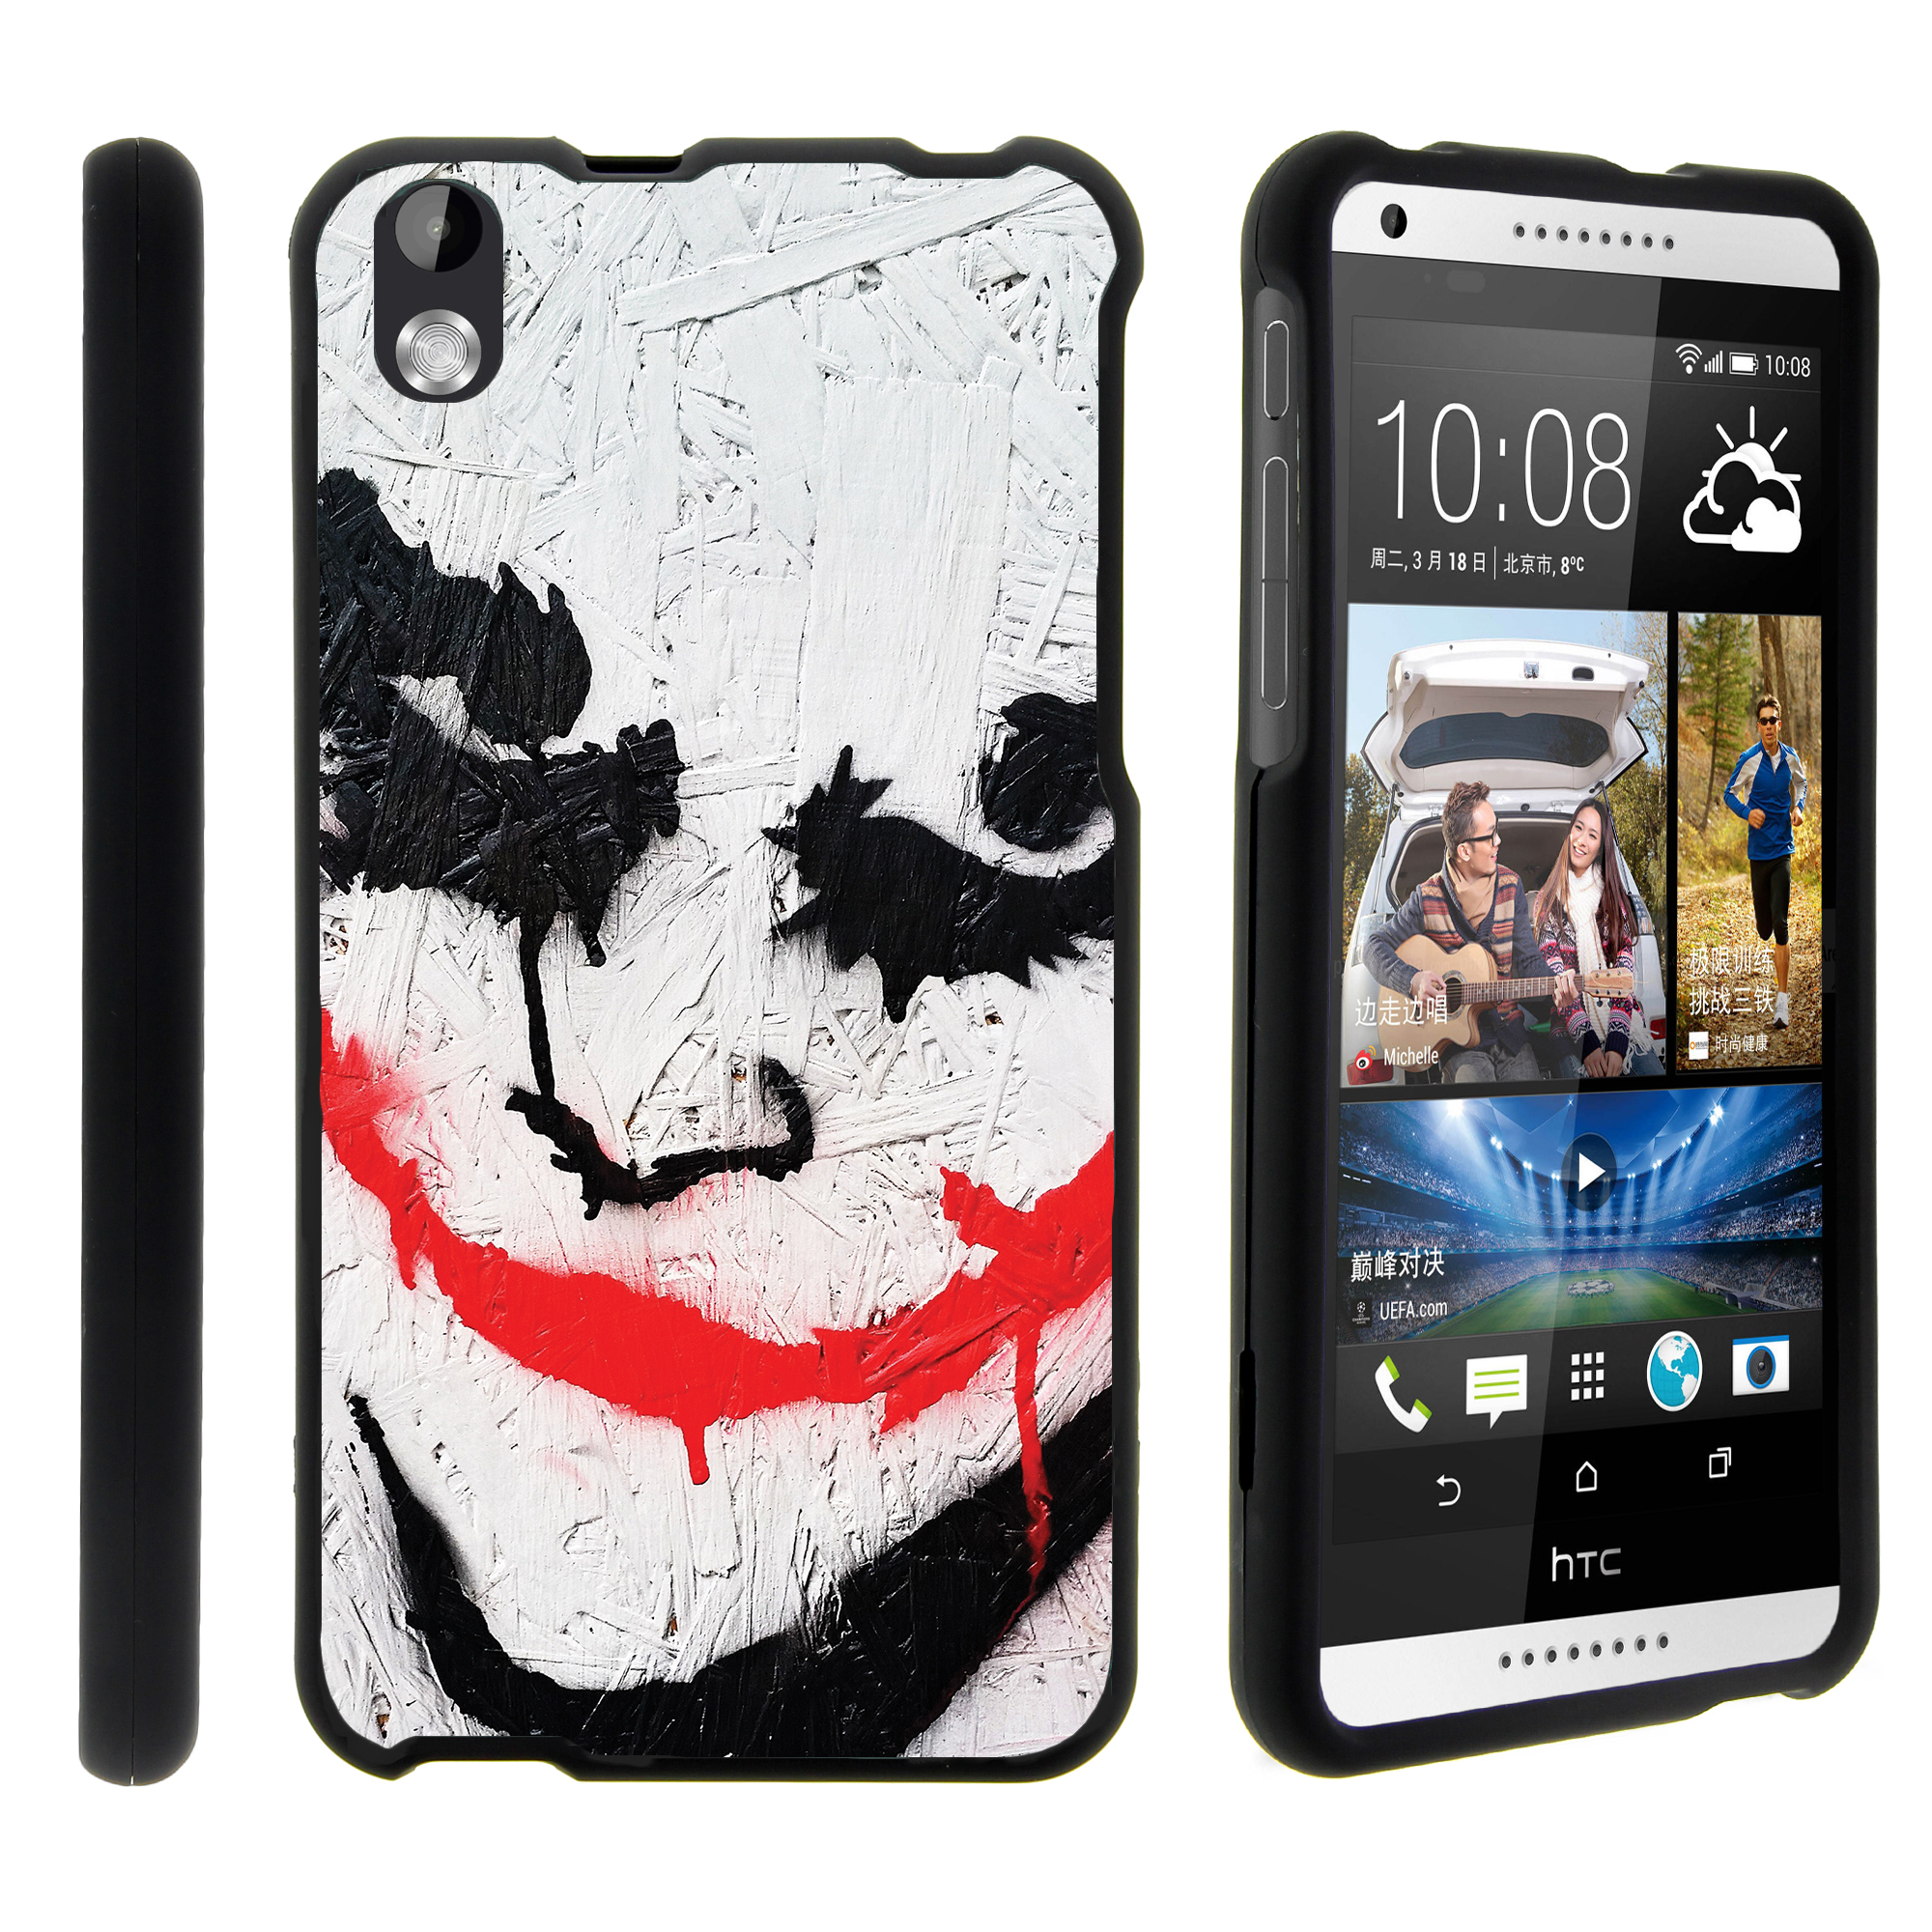 HTC Desire 816, [SNAP SHELL][Matte Black] 2 Piece Snap On Rubberized Hard Plastic Cell Phone Cover with Cool Designs - Joker